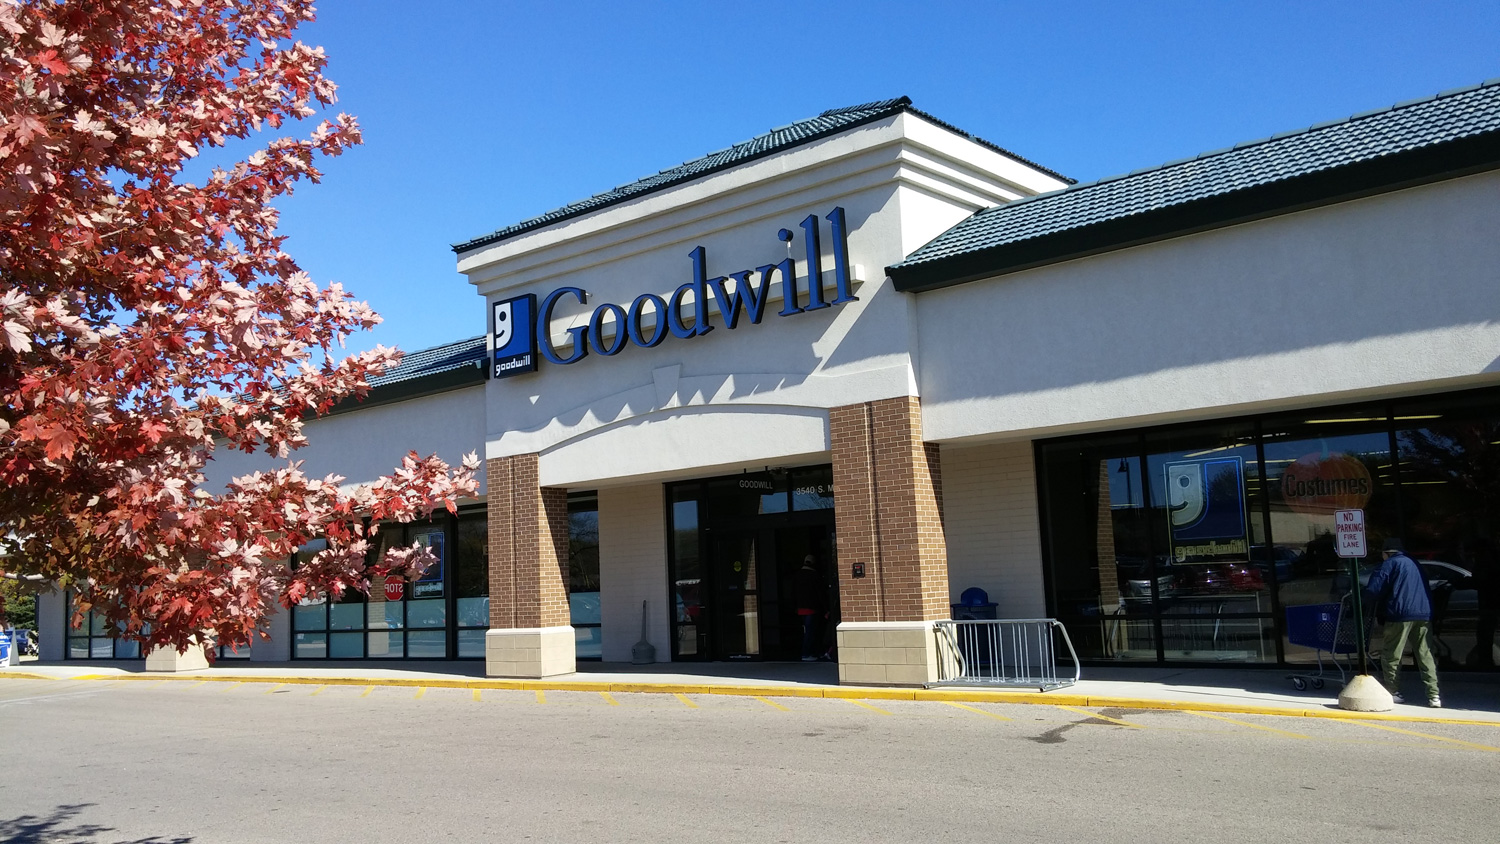 Goodwill New Berlin